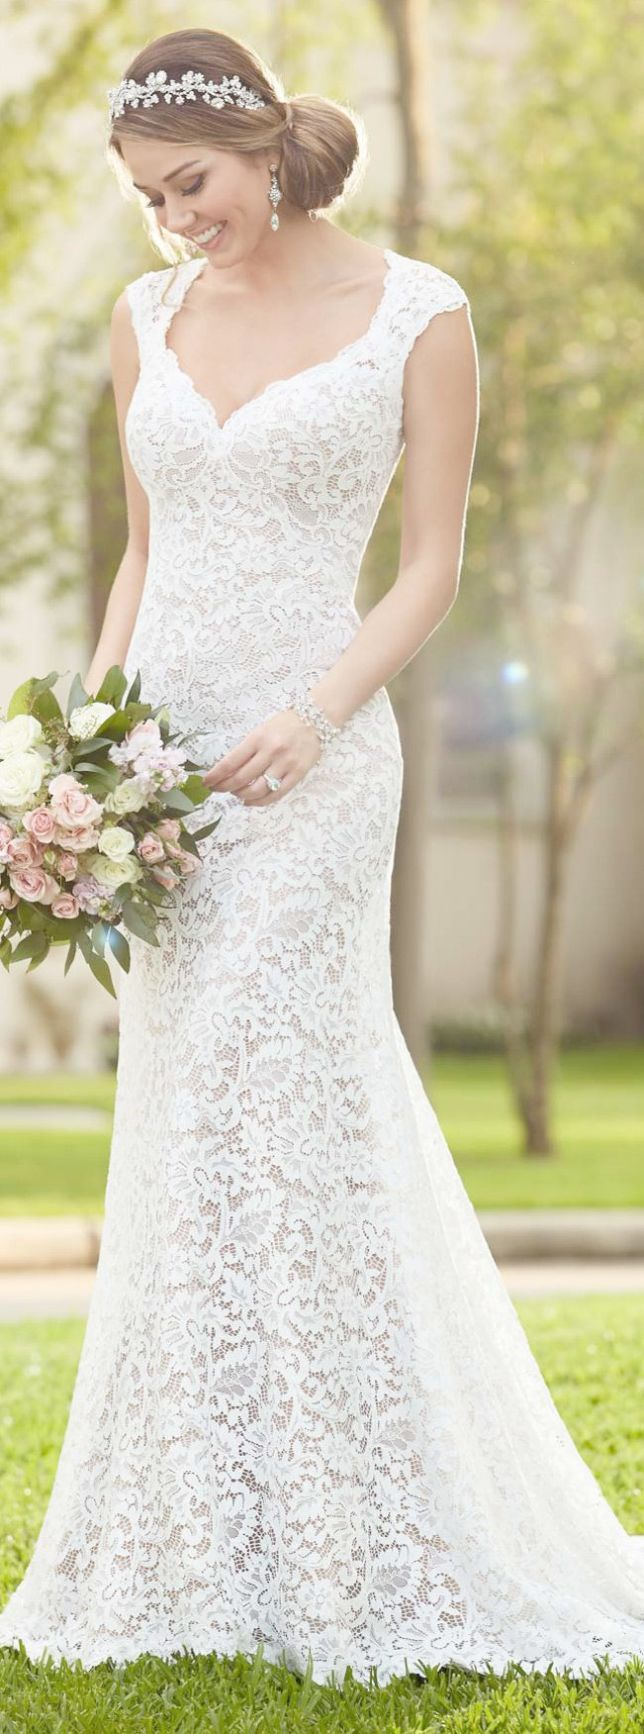 Lace wedding dress designers  Sheer Lace A Line Wedding Dress Sweetheart Lace Wedding Dress